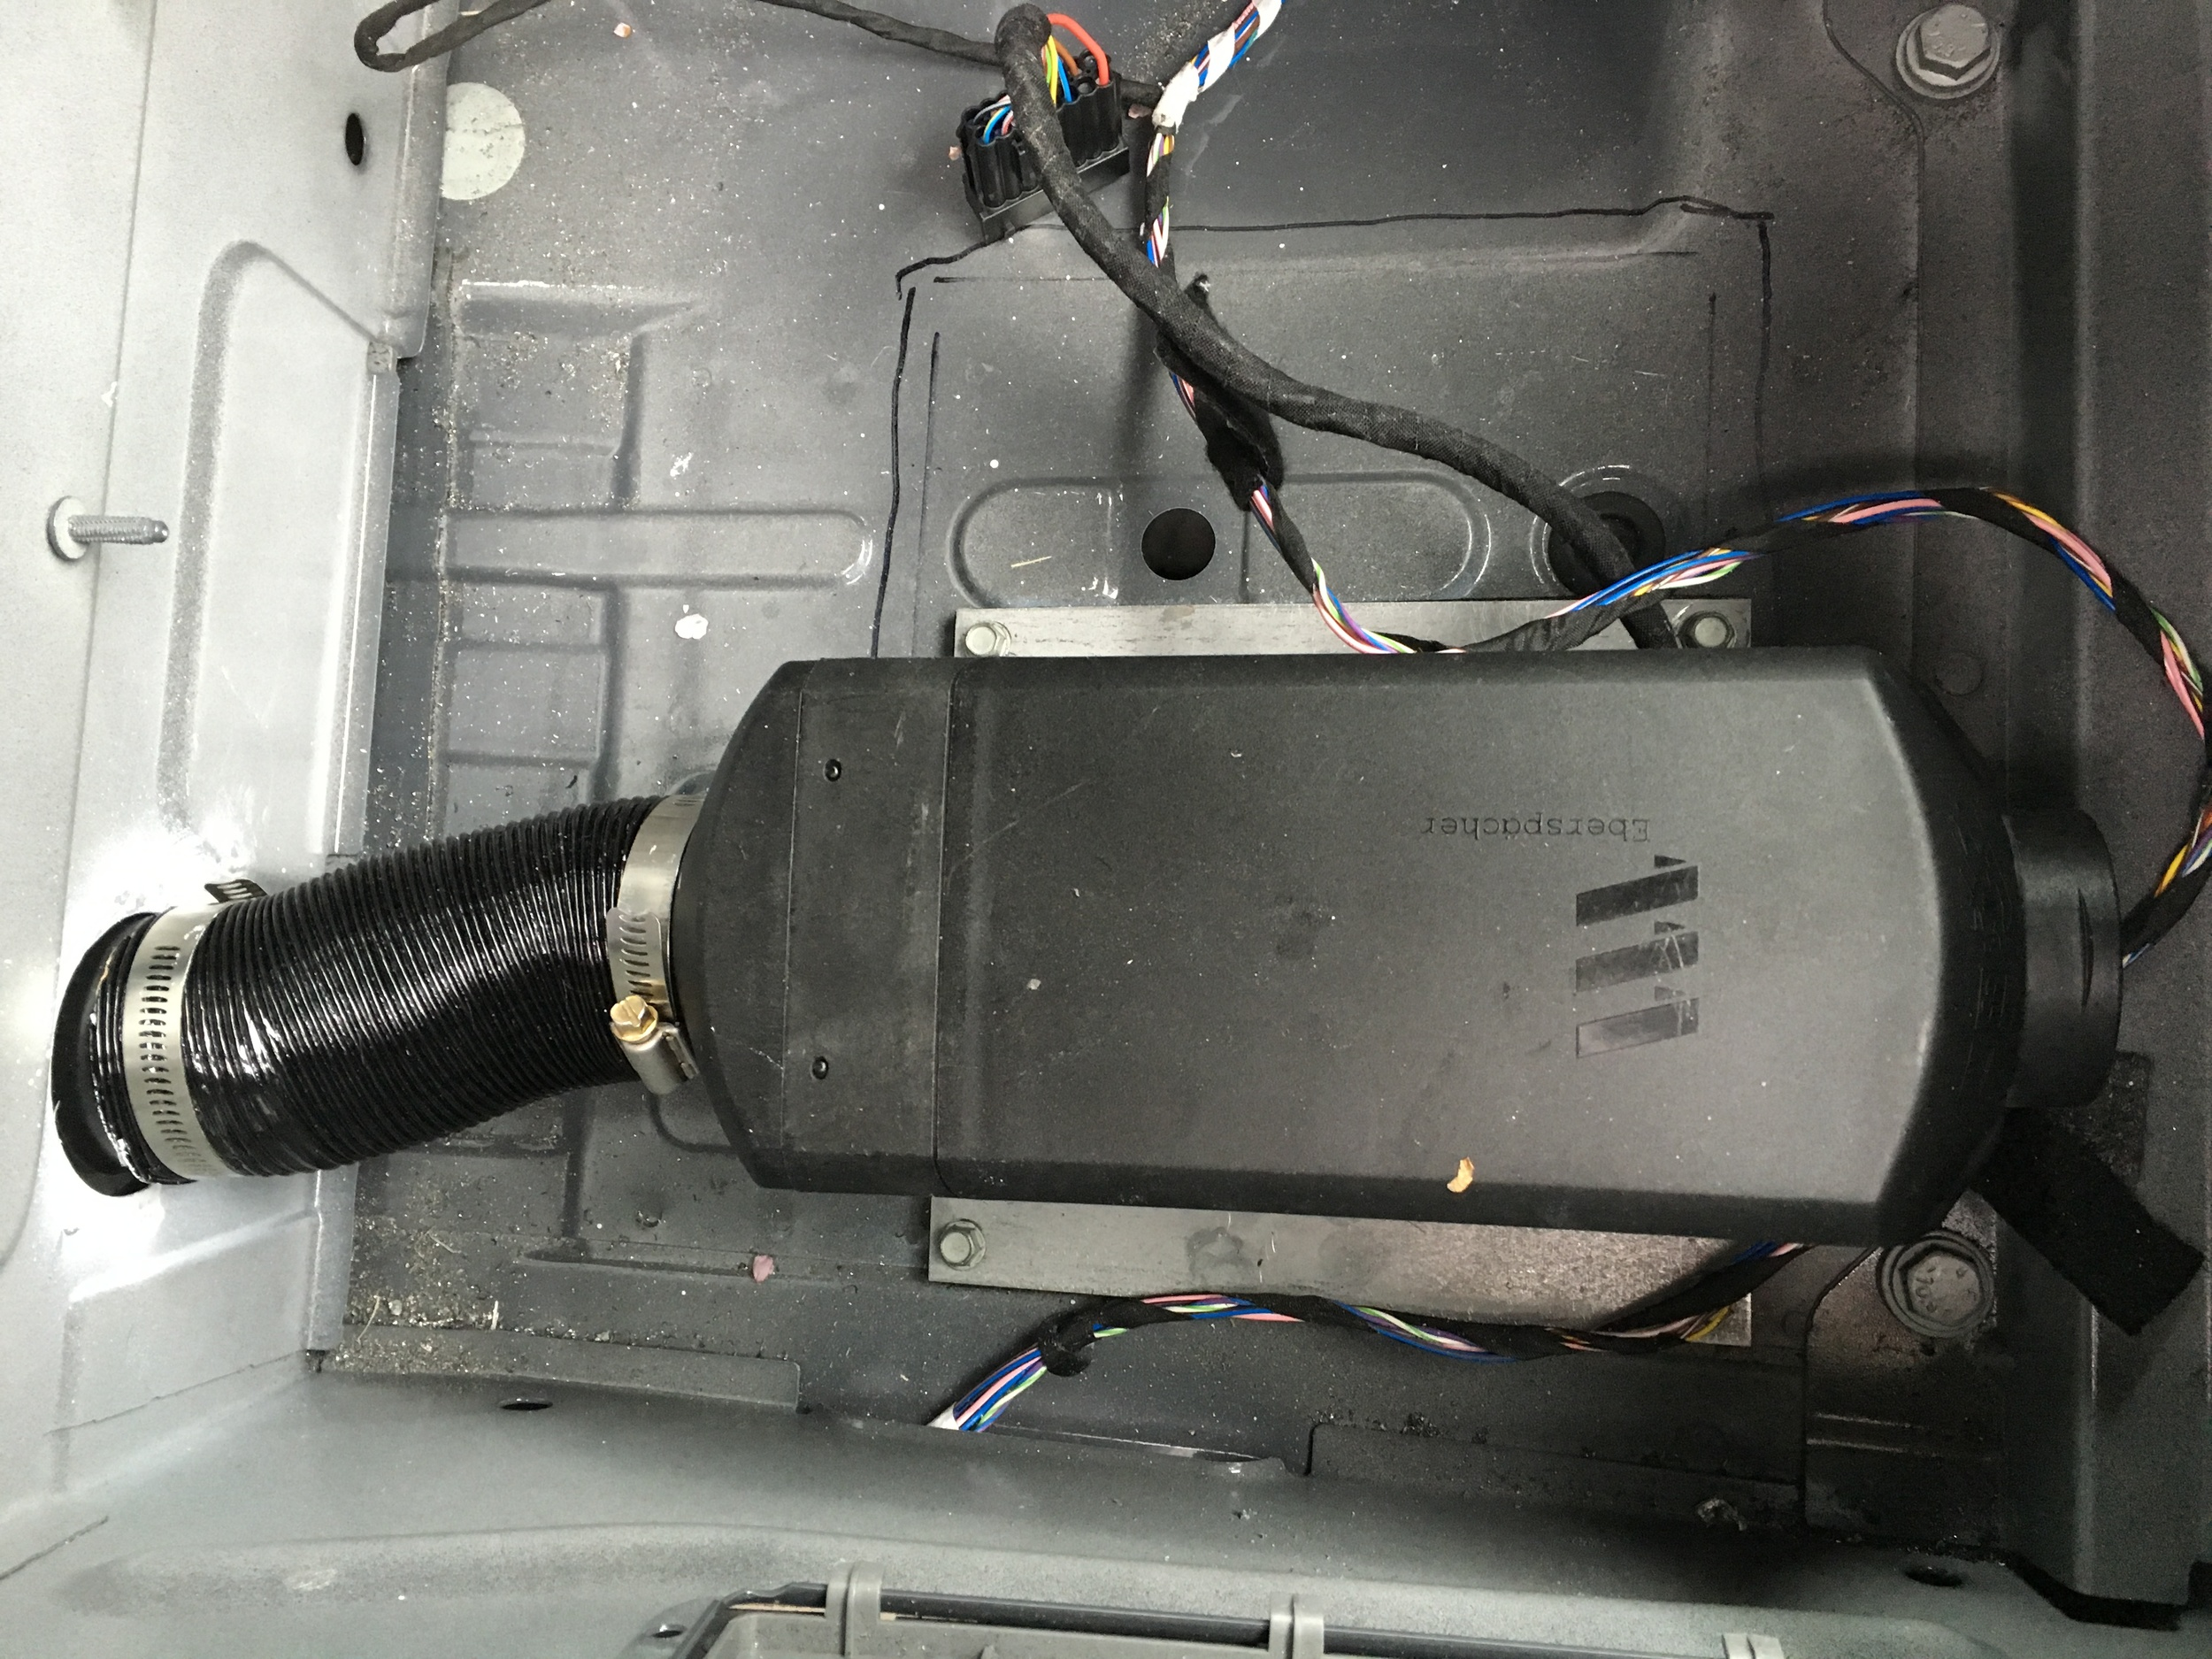 some tubing to connect it all